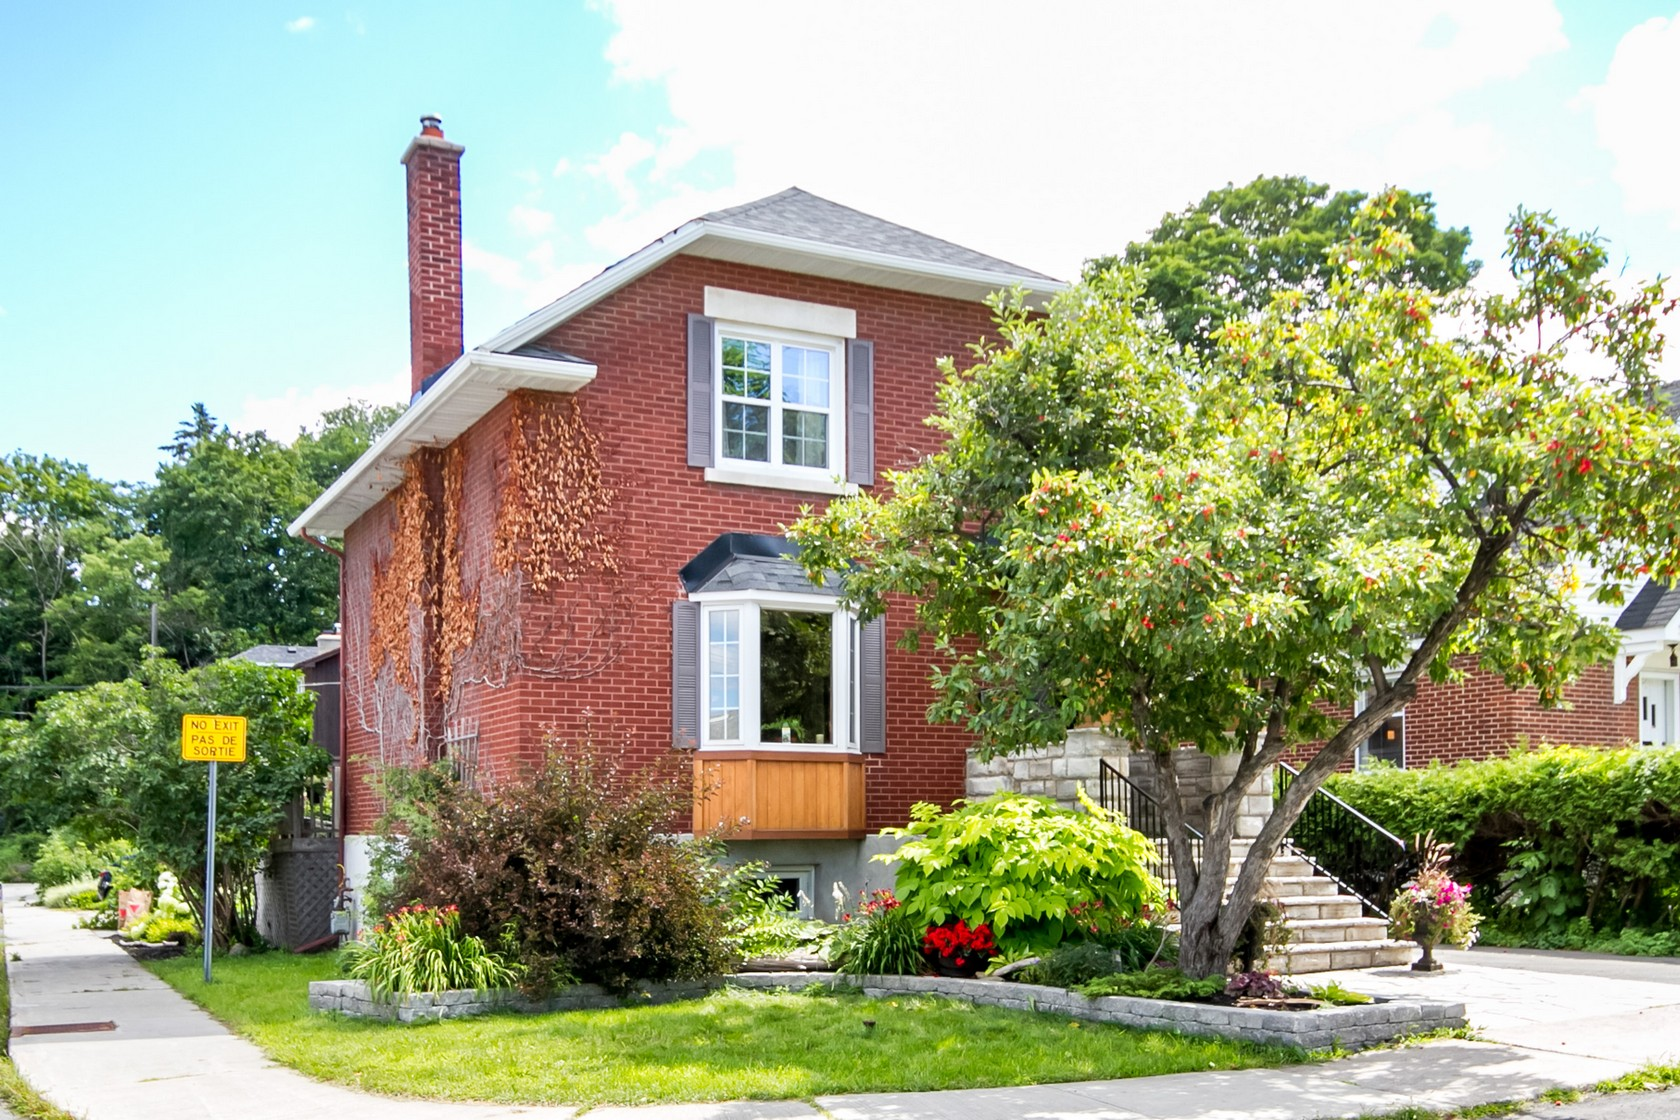 253 Fairmont Ave | Renovated Single Family Home in Civic Hospital Area